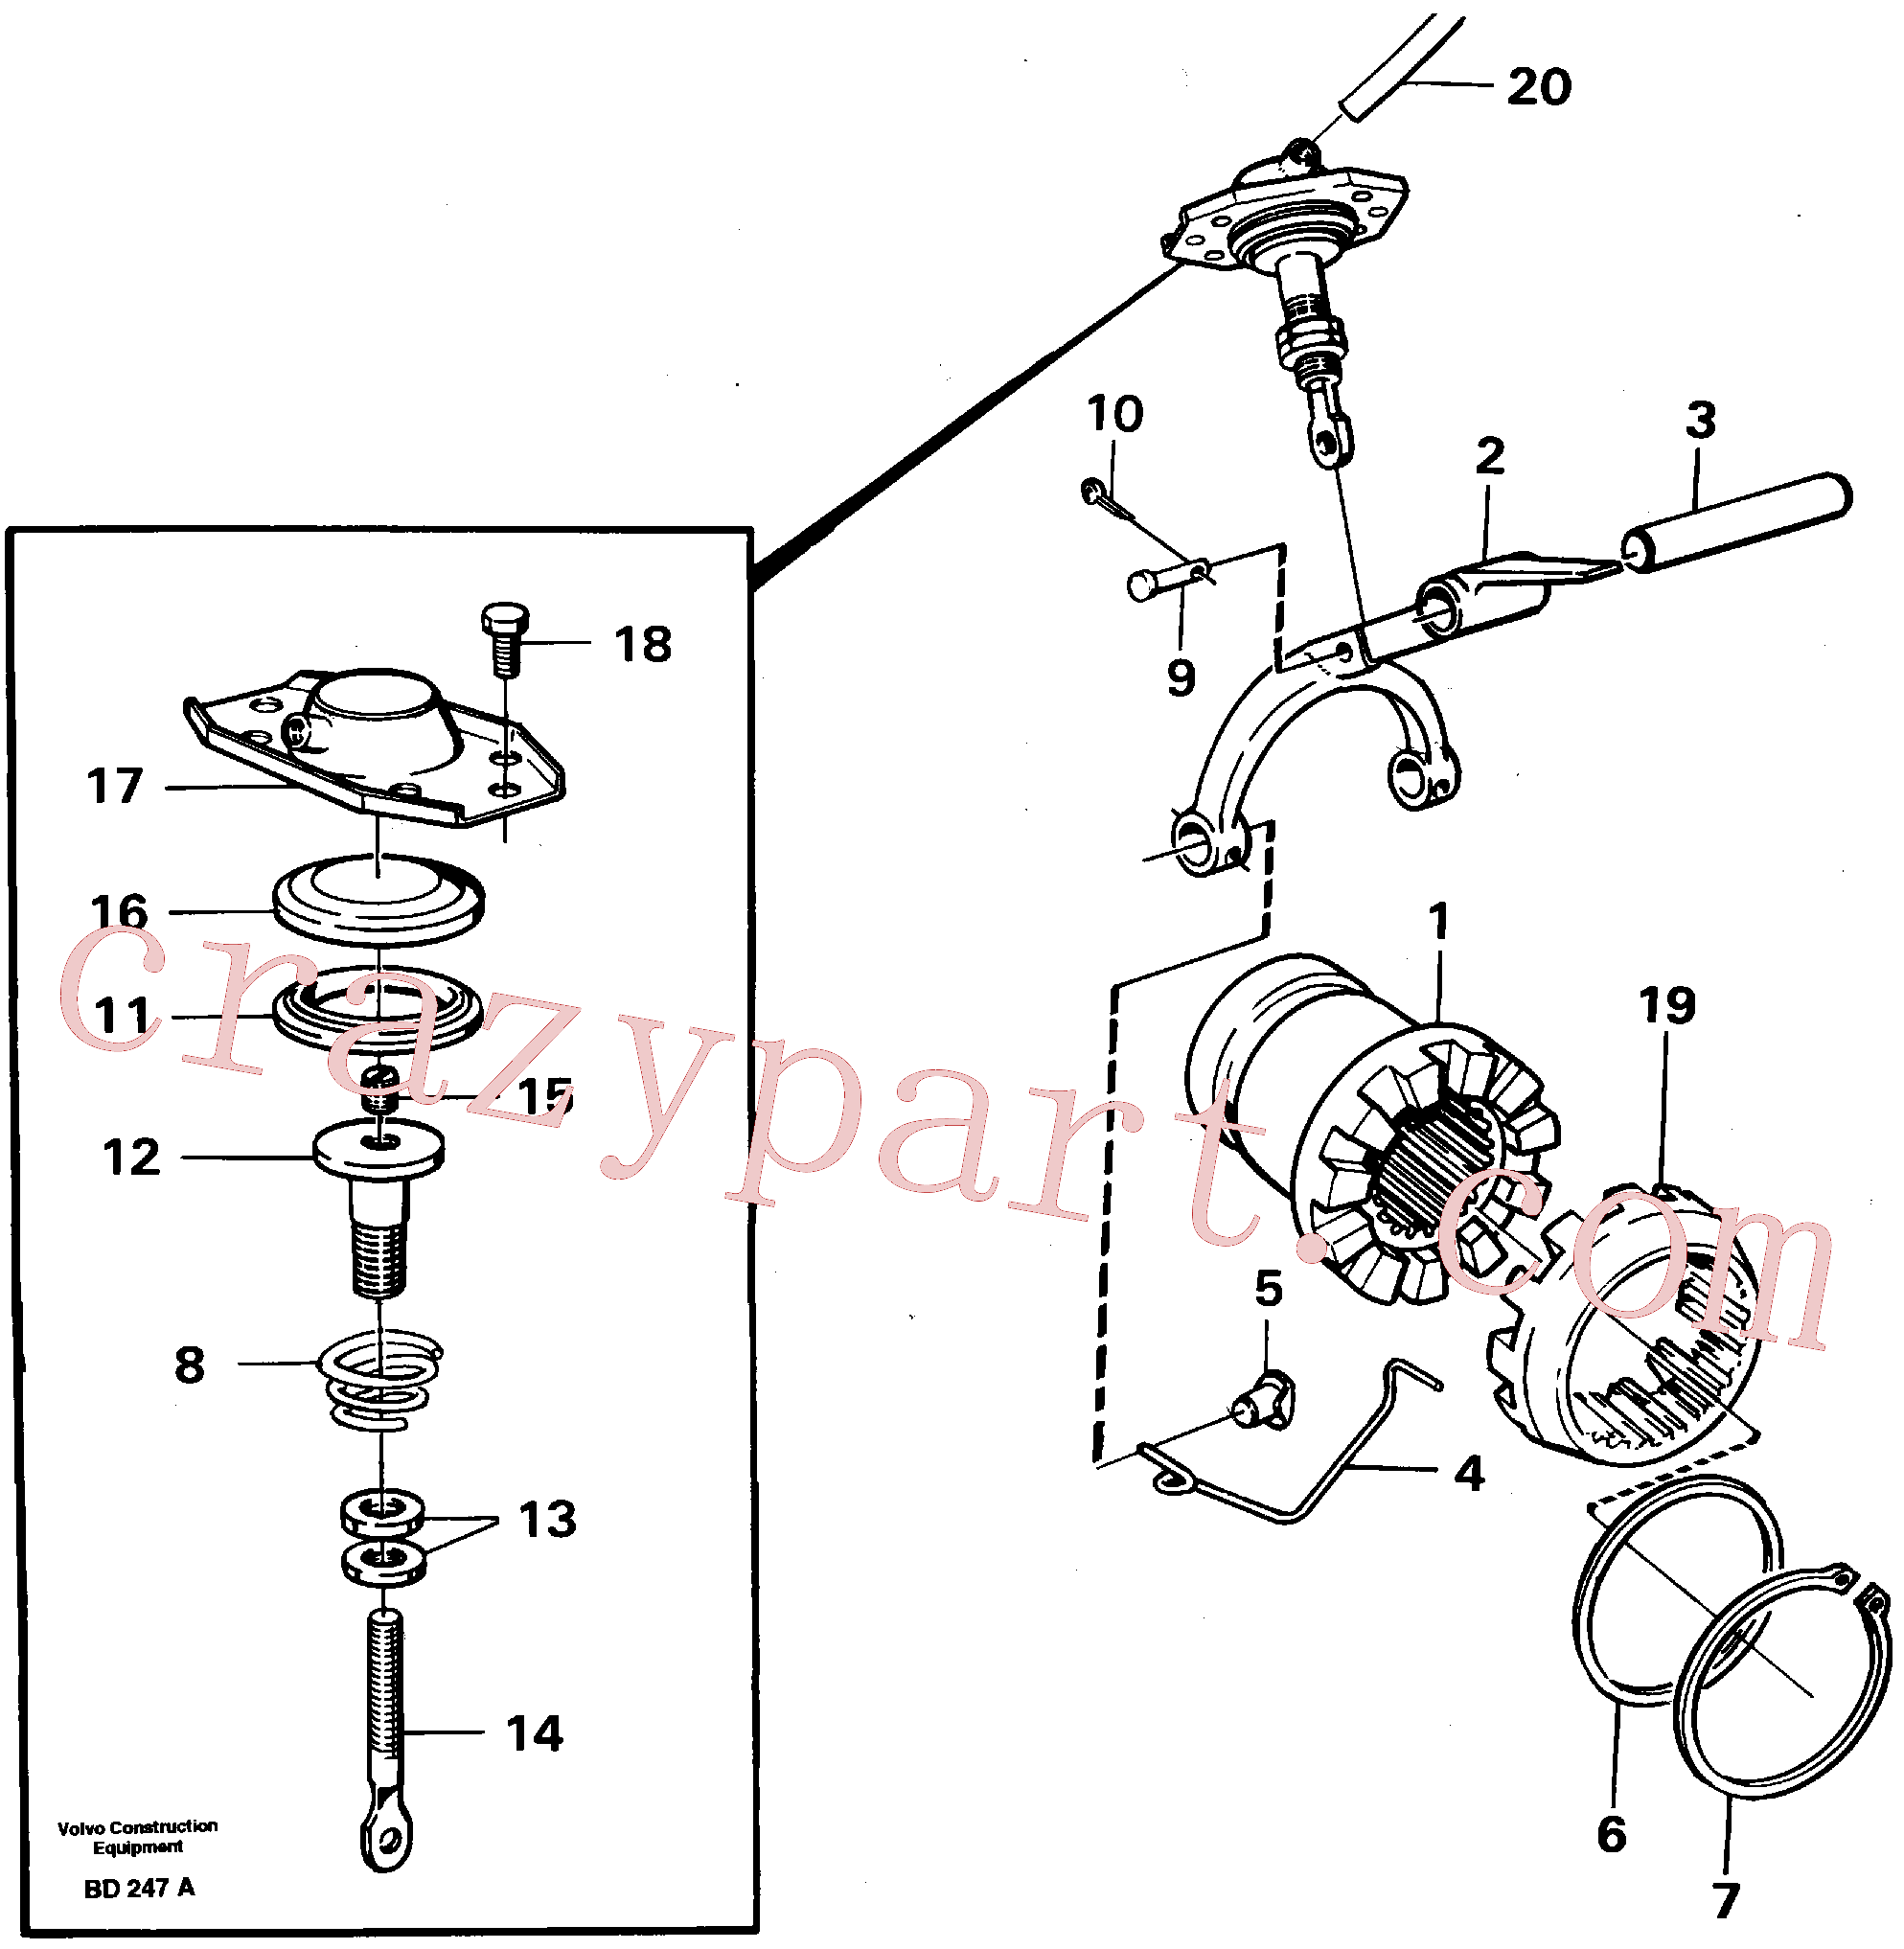 VOE7383971 for Volvo Differential lock(BD247A assembly)